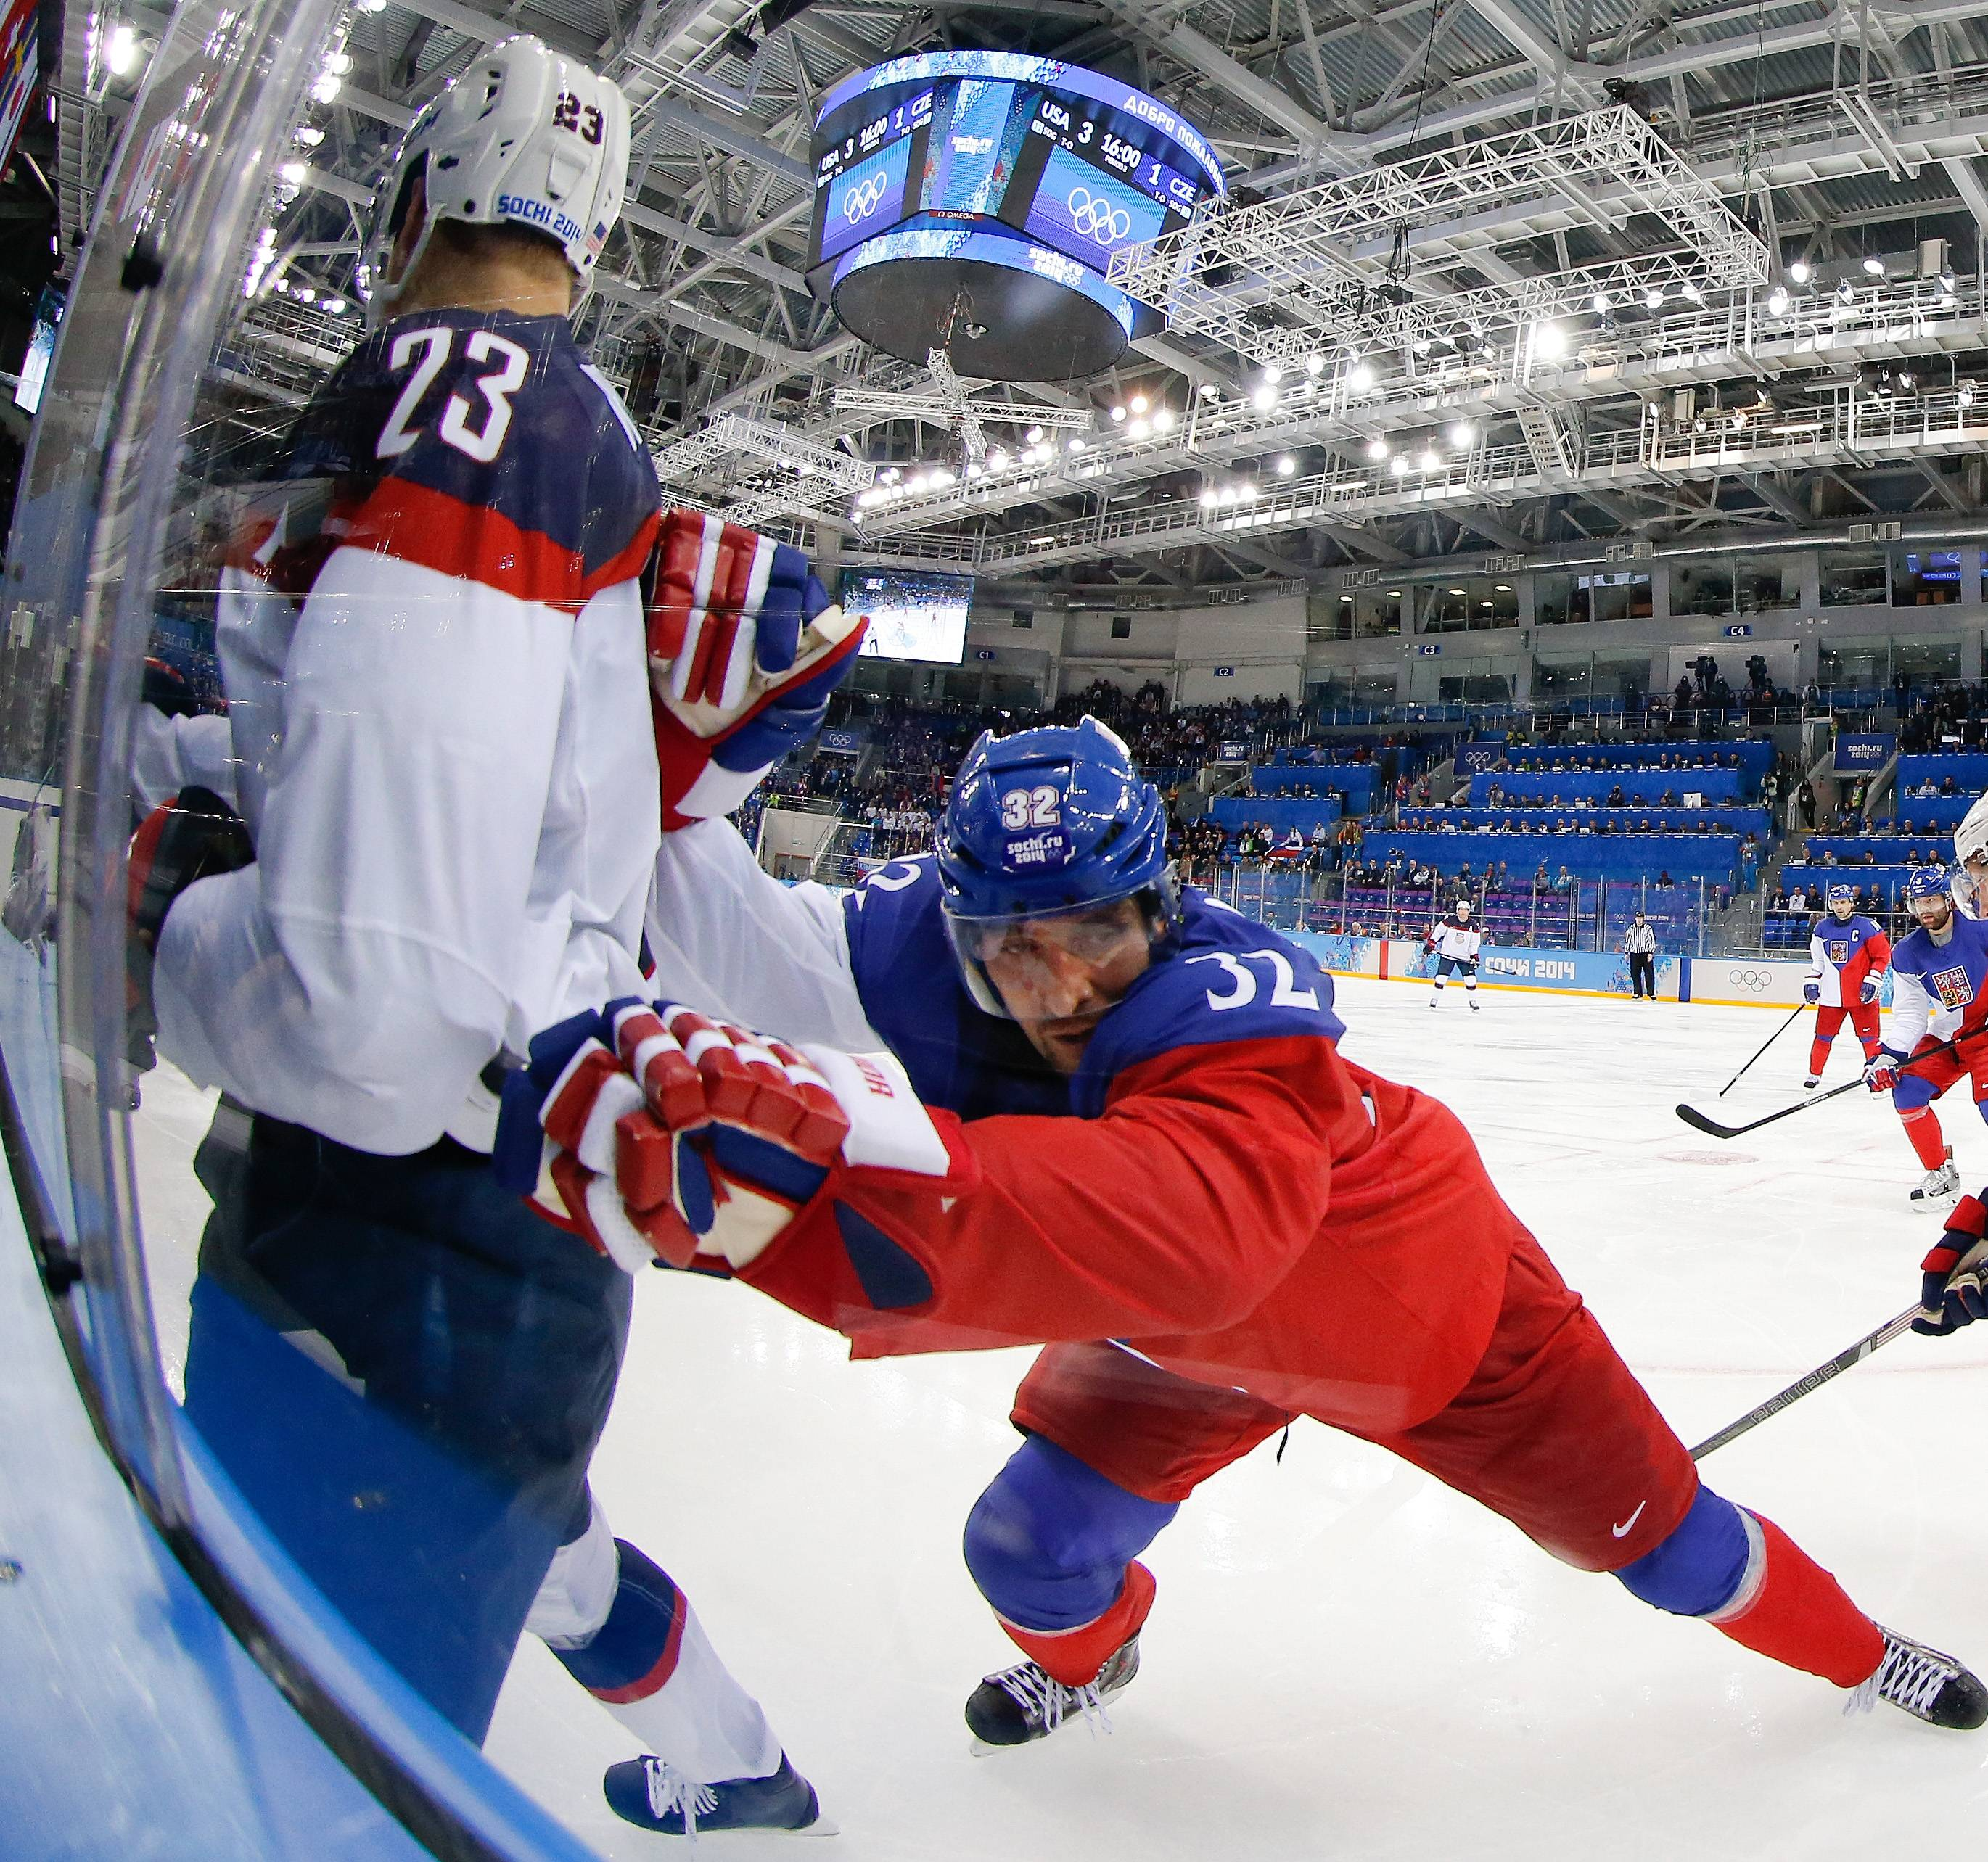 Czech Republic defenseman Michal Rozsival pins USA forward Dustin Brown agains the glass during the second period of men's quarterfinal hockey game.